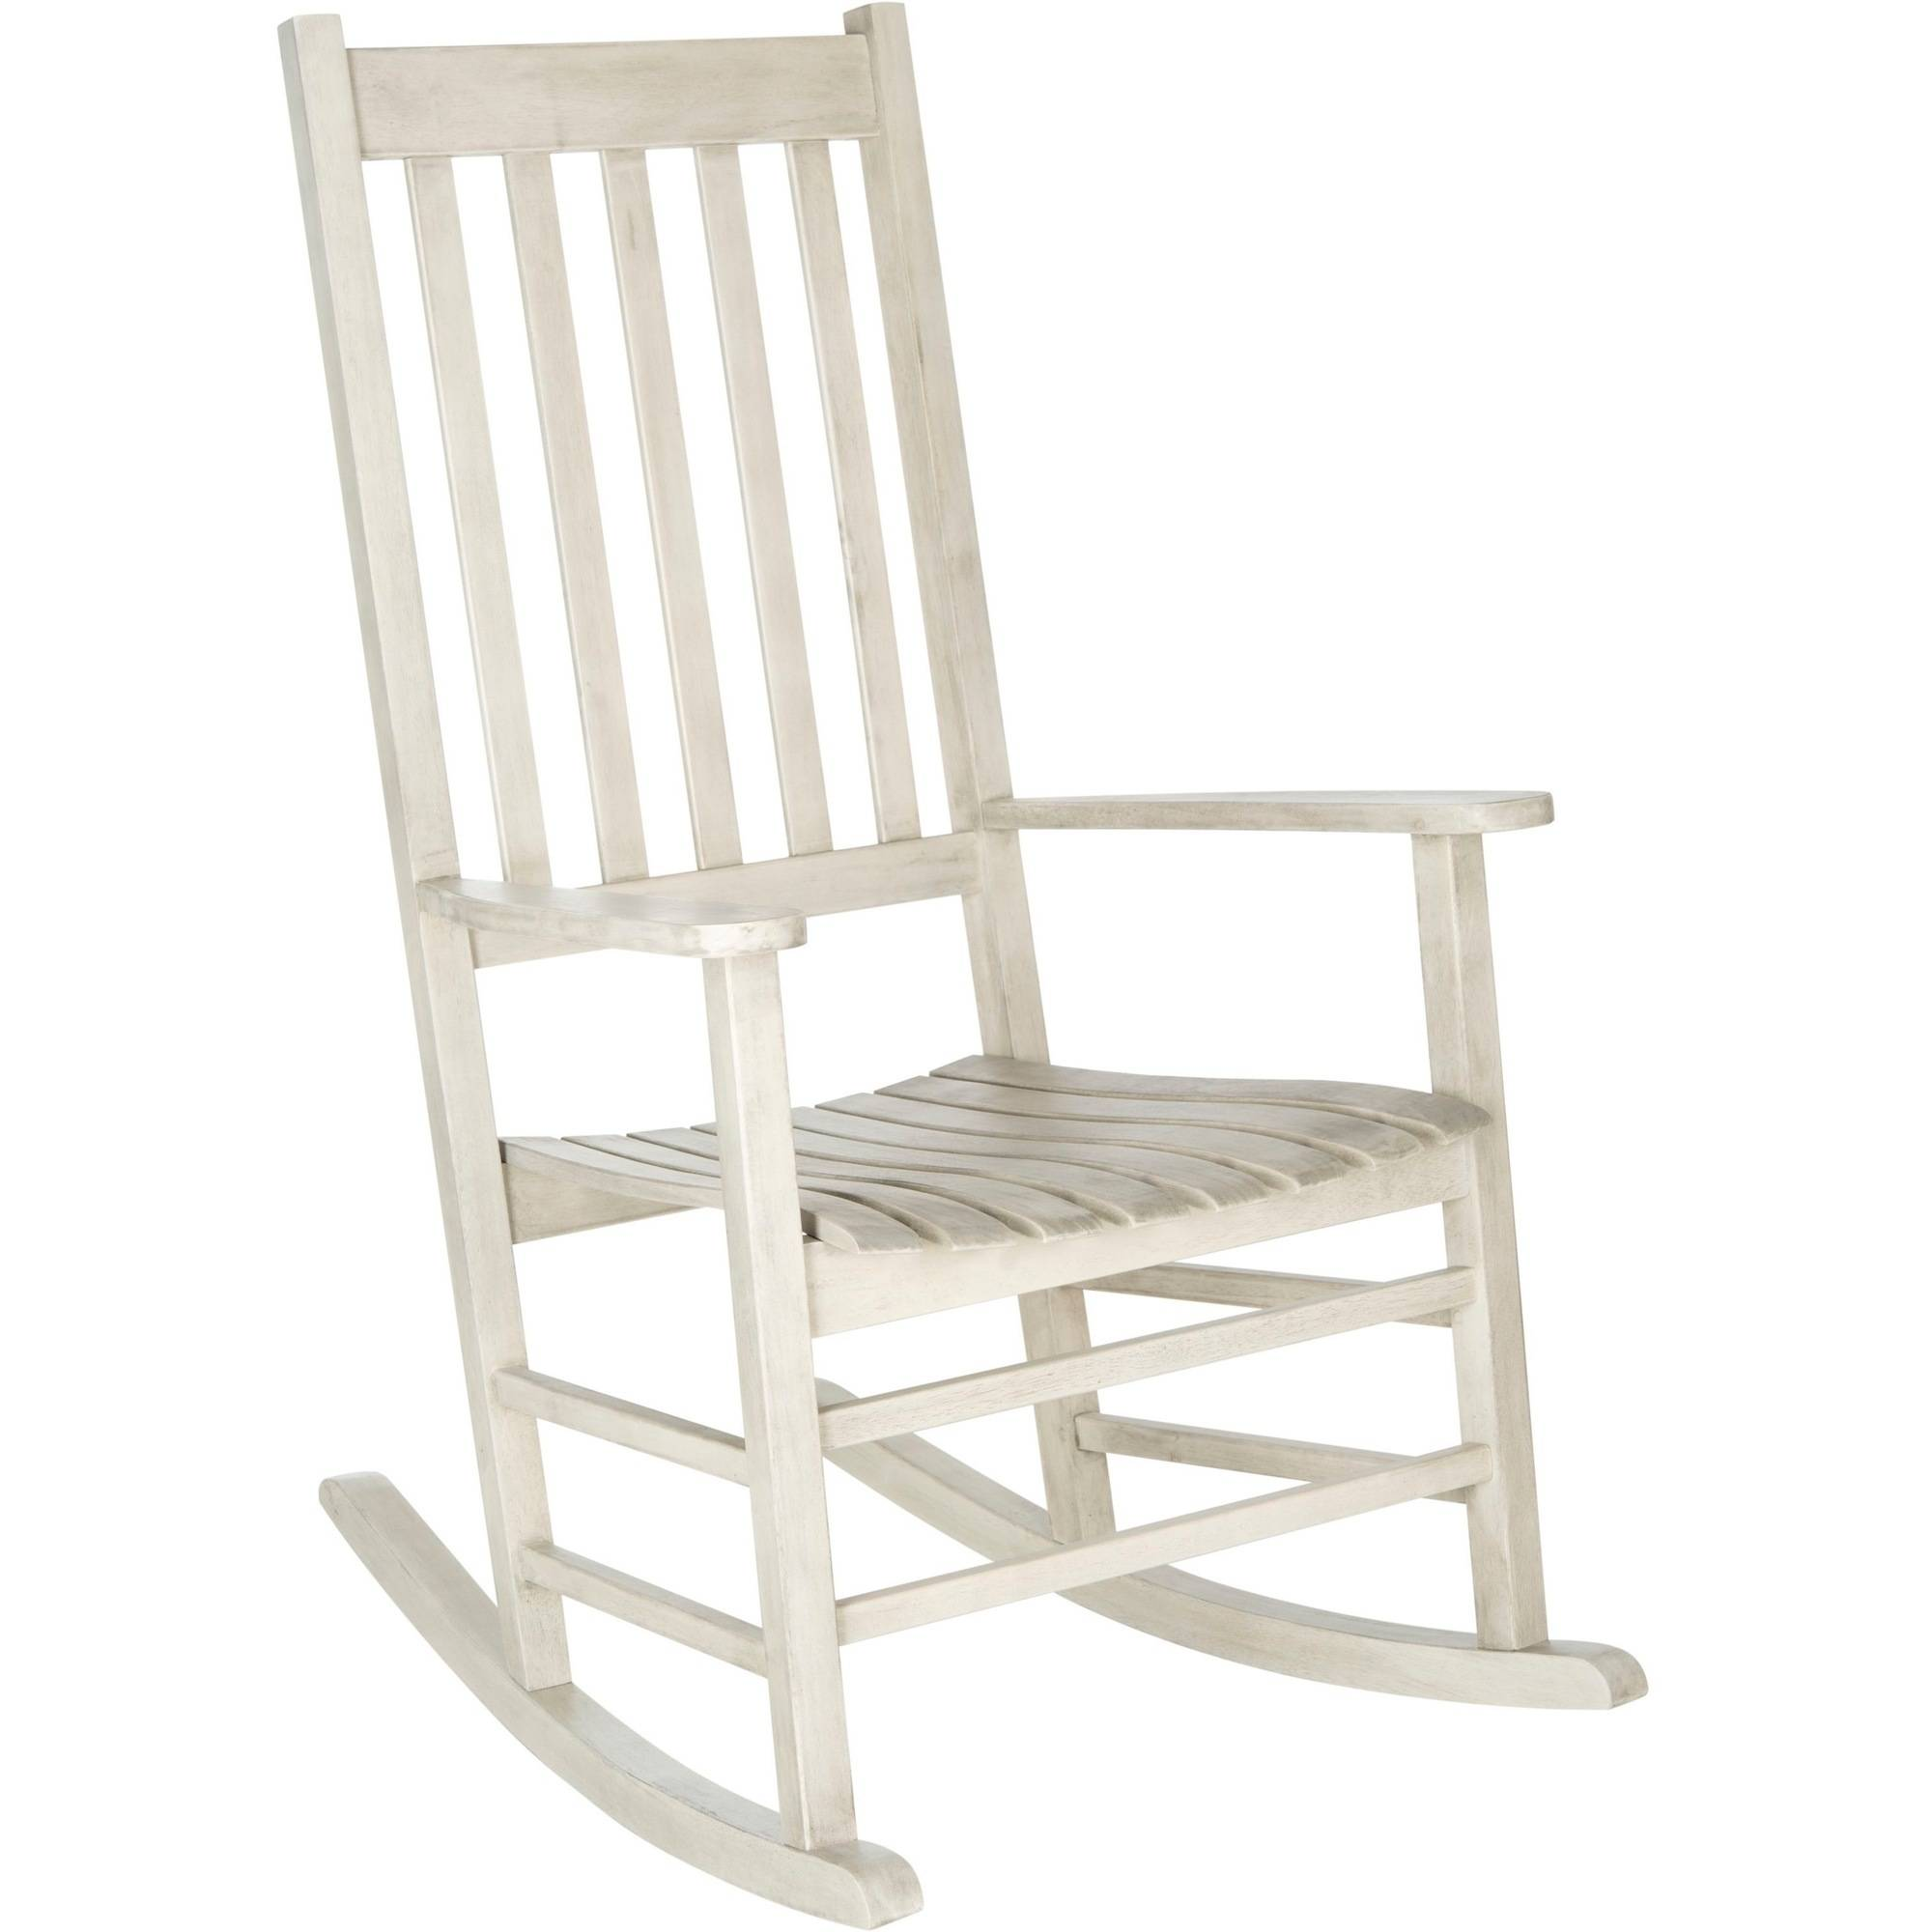 Safavieh Shasta Outdoor Rocking Chair Multiple Colors Walmart